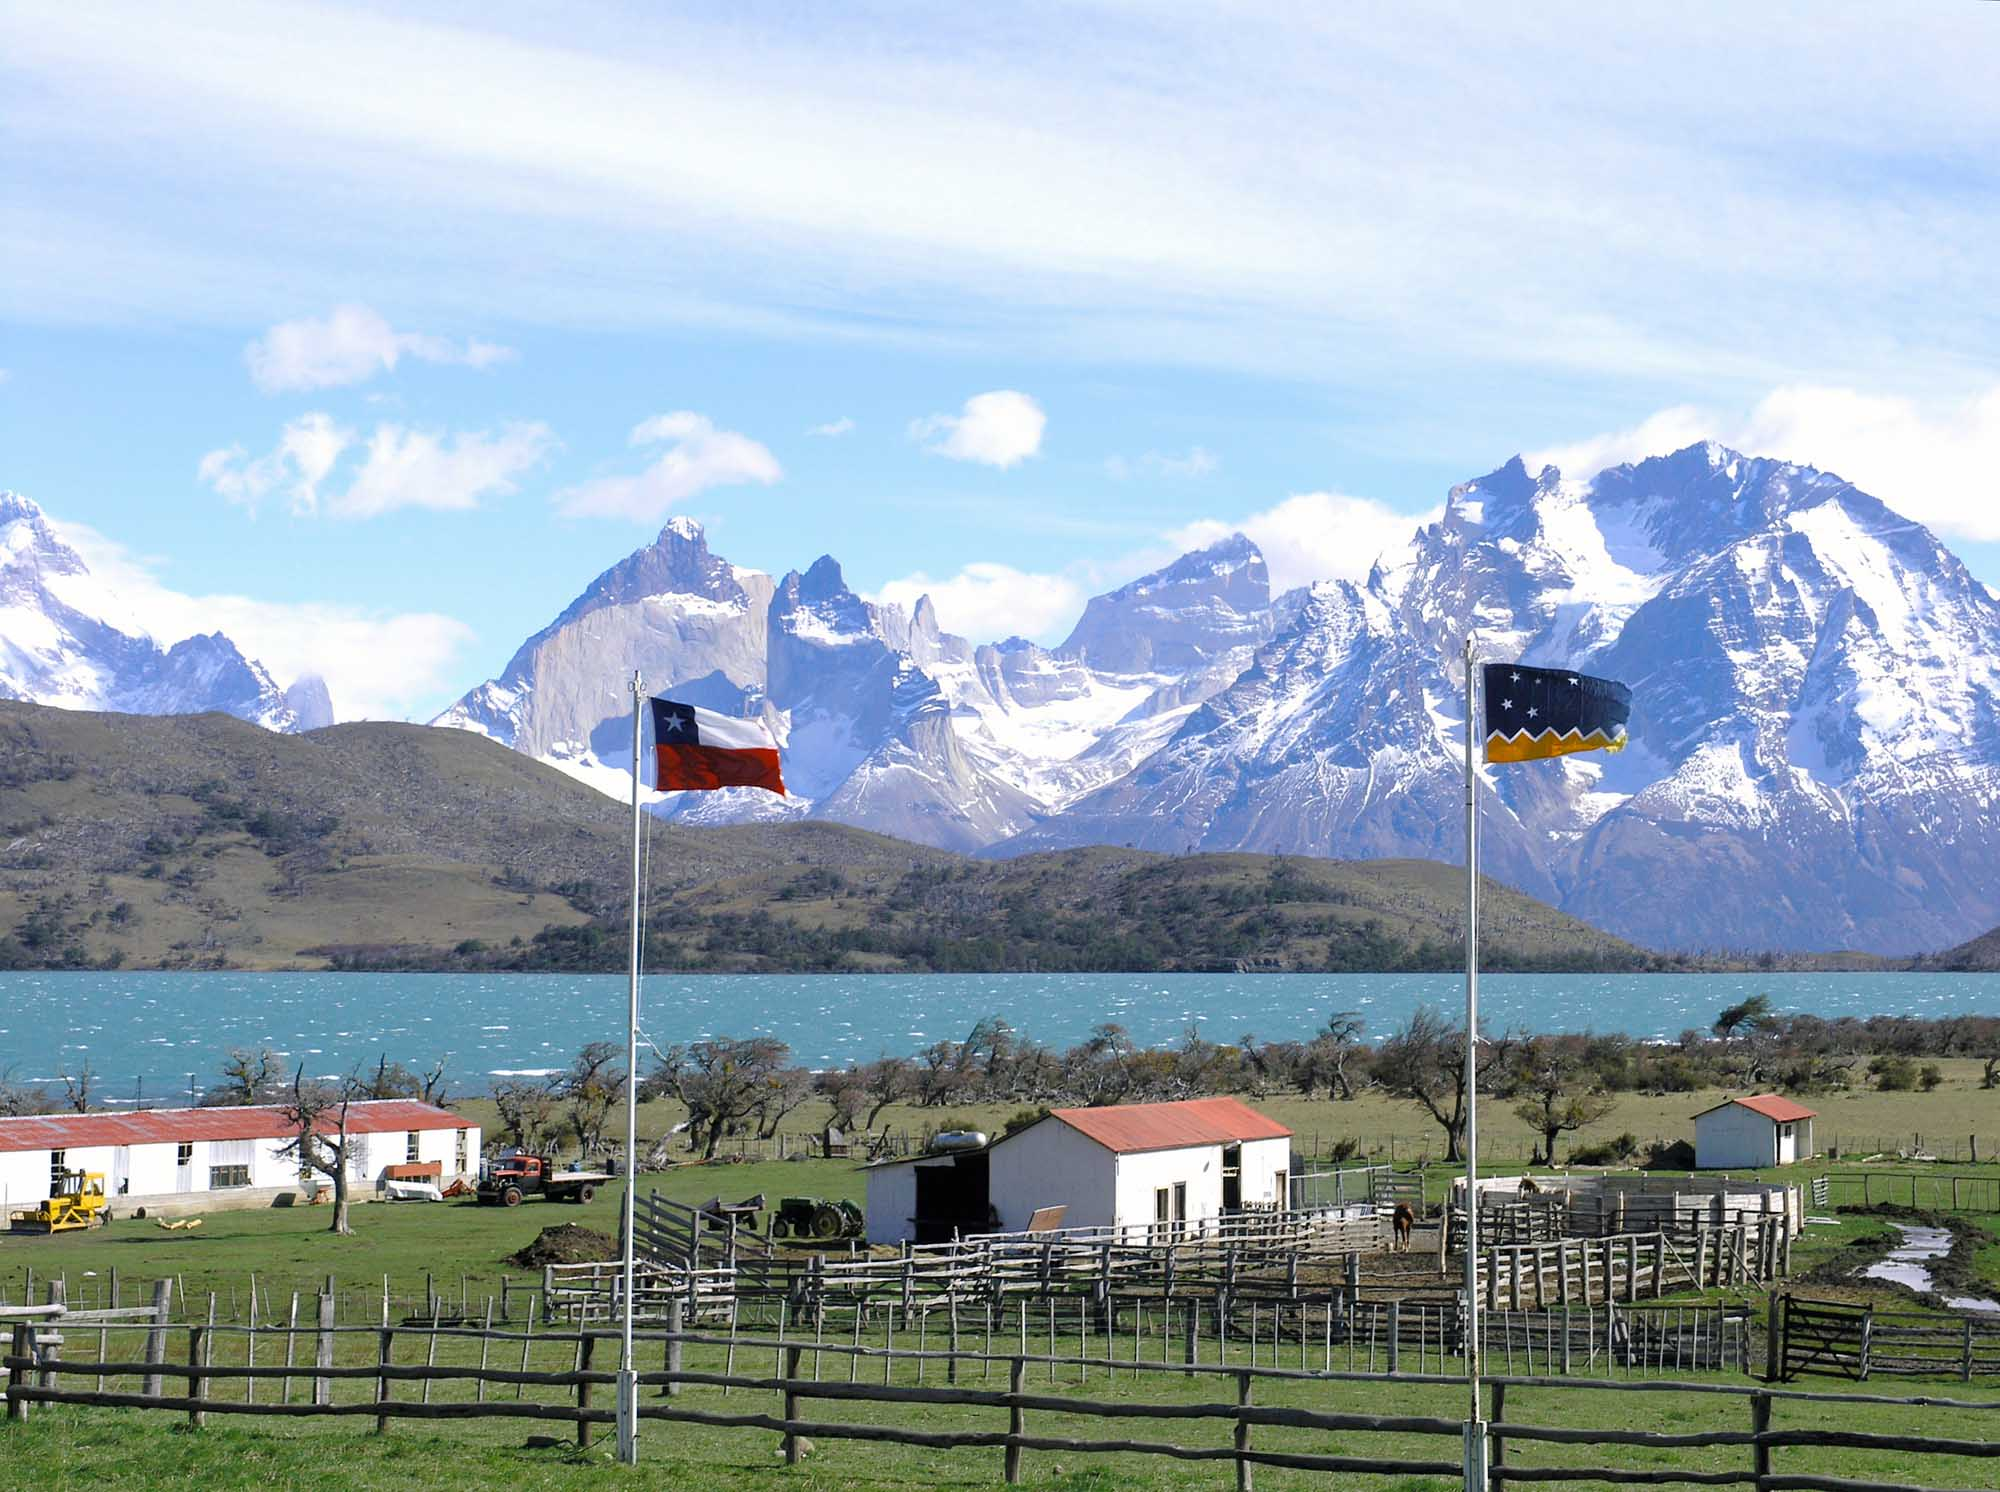 A farm displays the flags of Patagonia and Chile.